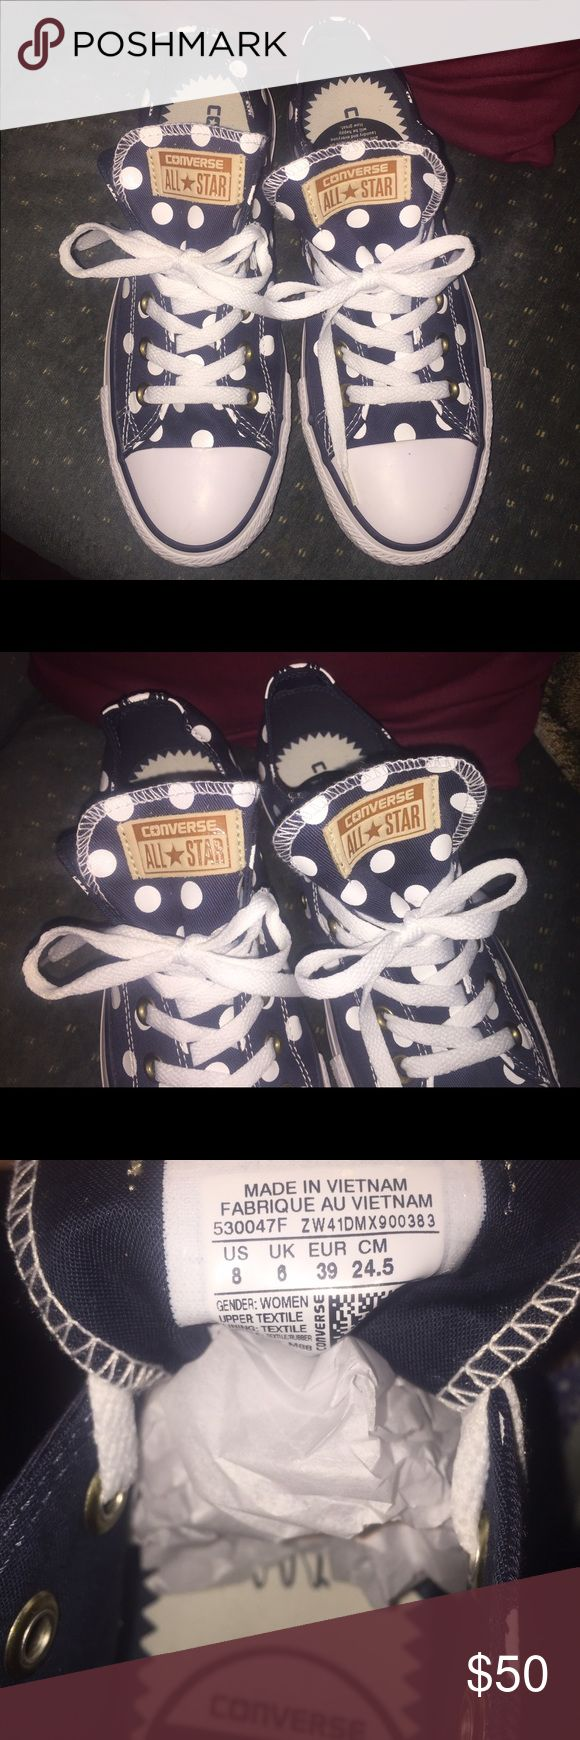 NWOT* CONVERSE* ALL STAR* navy/white sneakers sz8 Brand new! CONVERSE ALL STAR⭐️Navy & white polka dot canvas sneakers, Ladies size8.        No box. Adorable for summer!🌷 Converse Shoes Sneakers